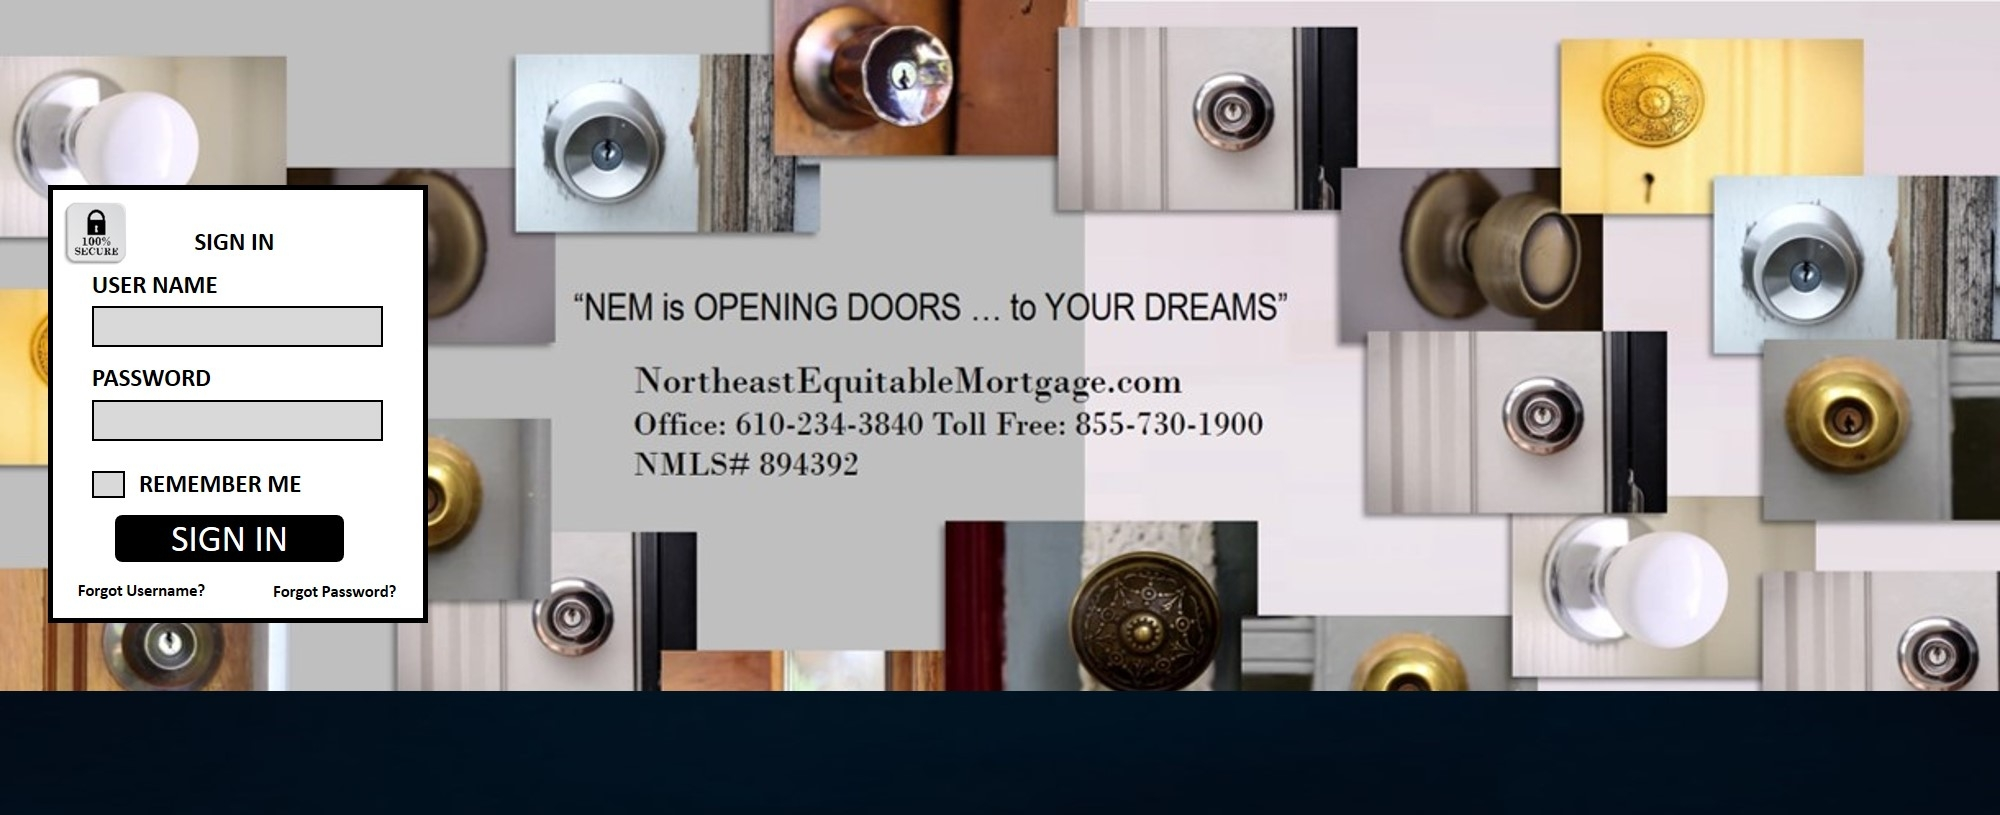 Northeast Equitable Mortgage, LLC slide #1